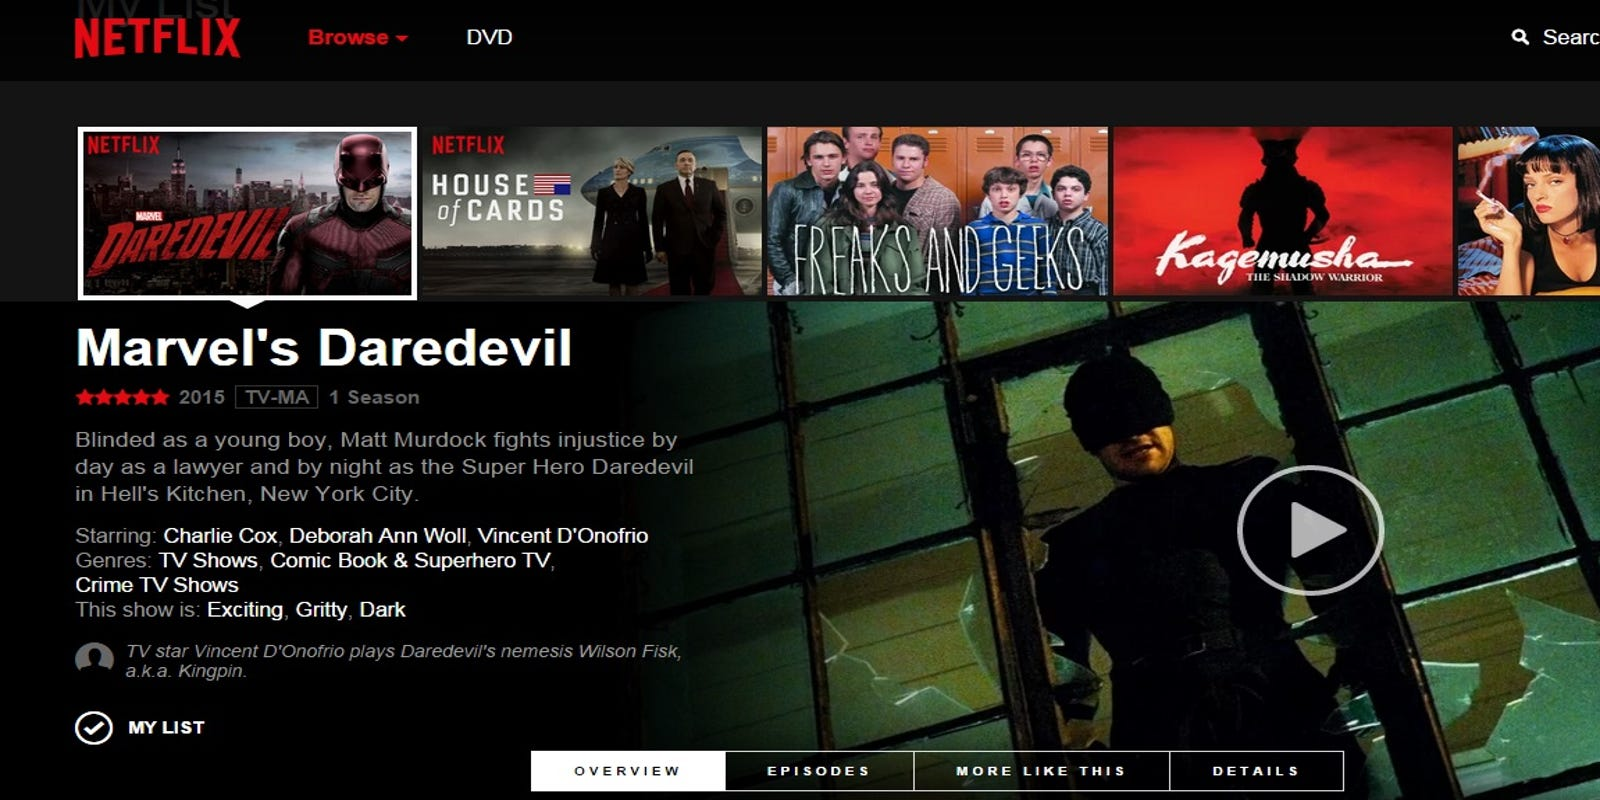 Cutting the Cord: A new user interface coming to Netflix on